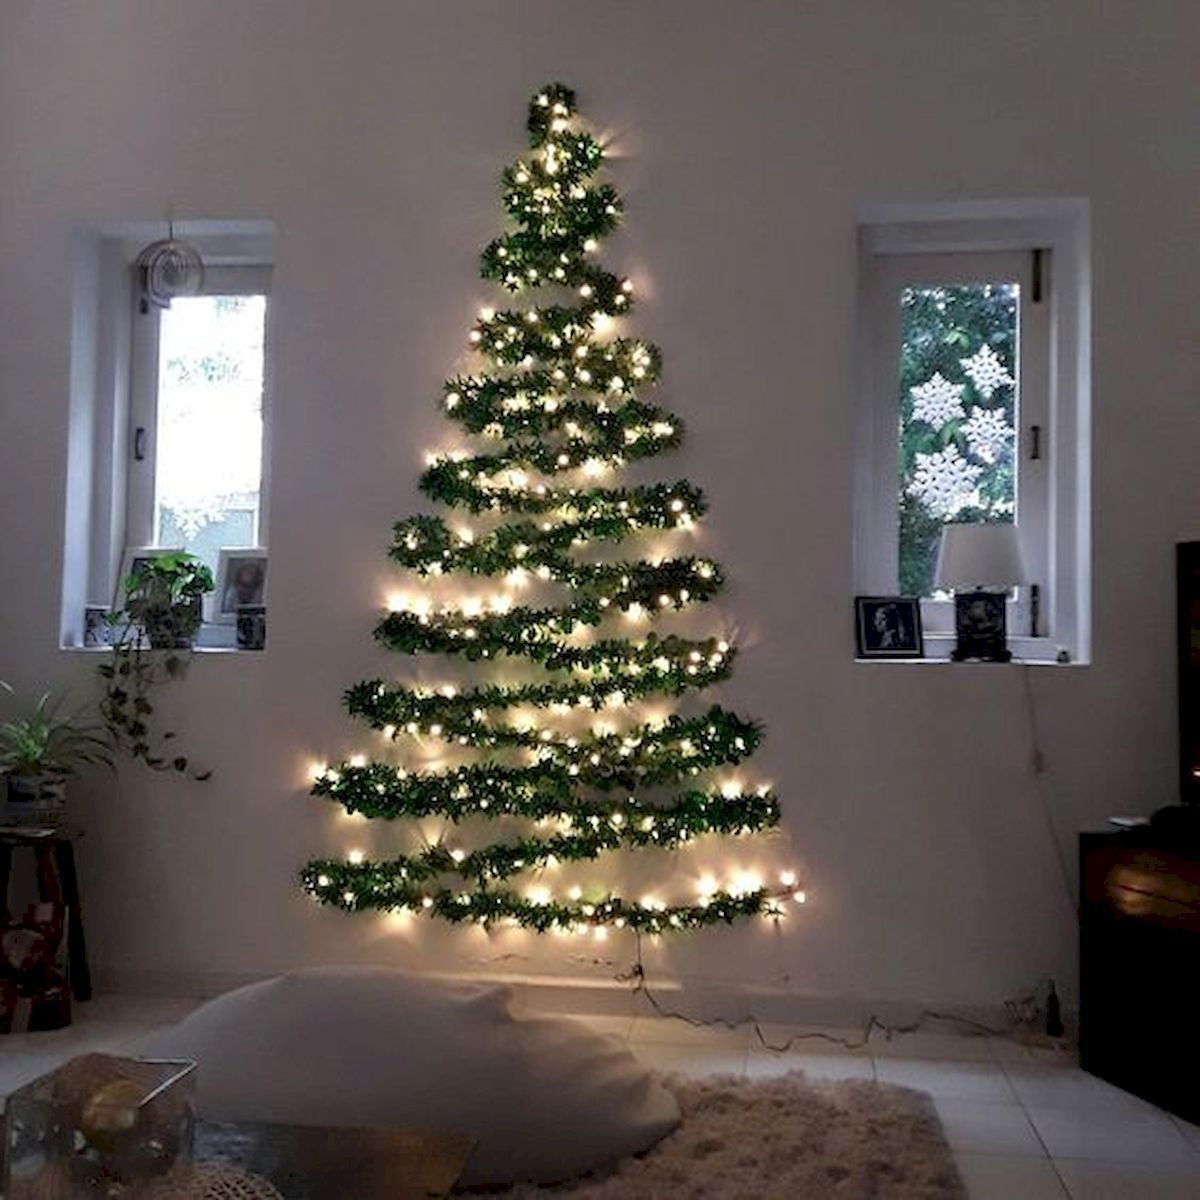 35 Awesome Apartment Christmas Decorations Ideas 34 Christmas Decorations Apartment Creative Christmas Trees Wall Christmas Tree